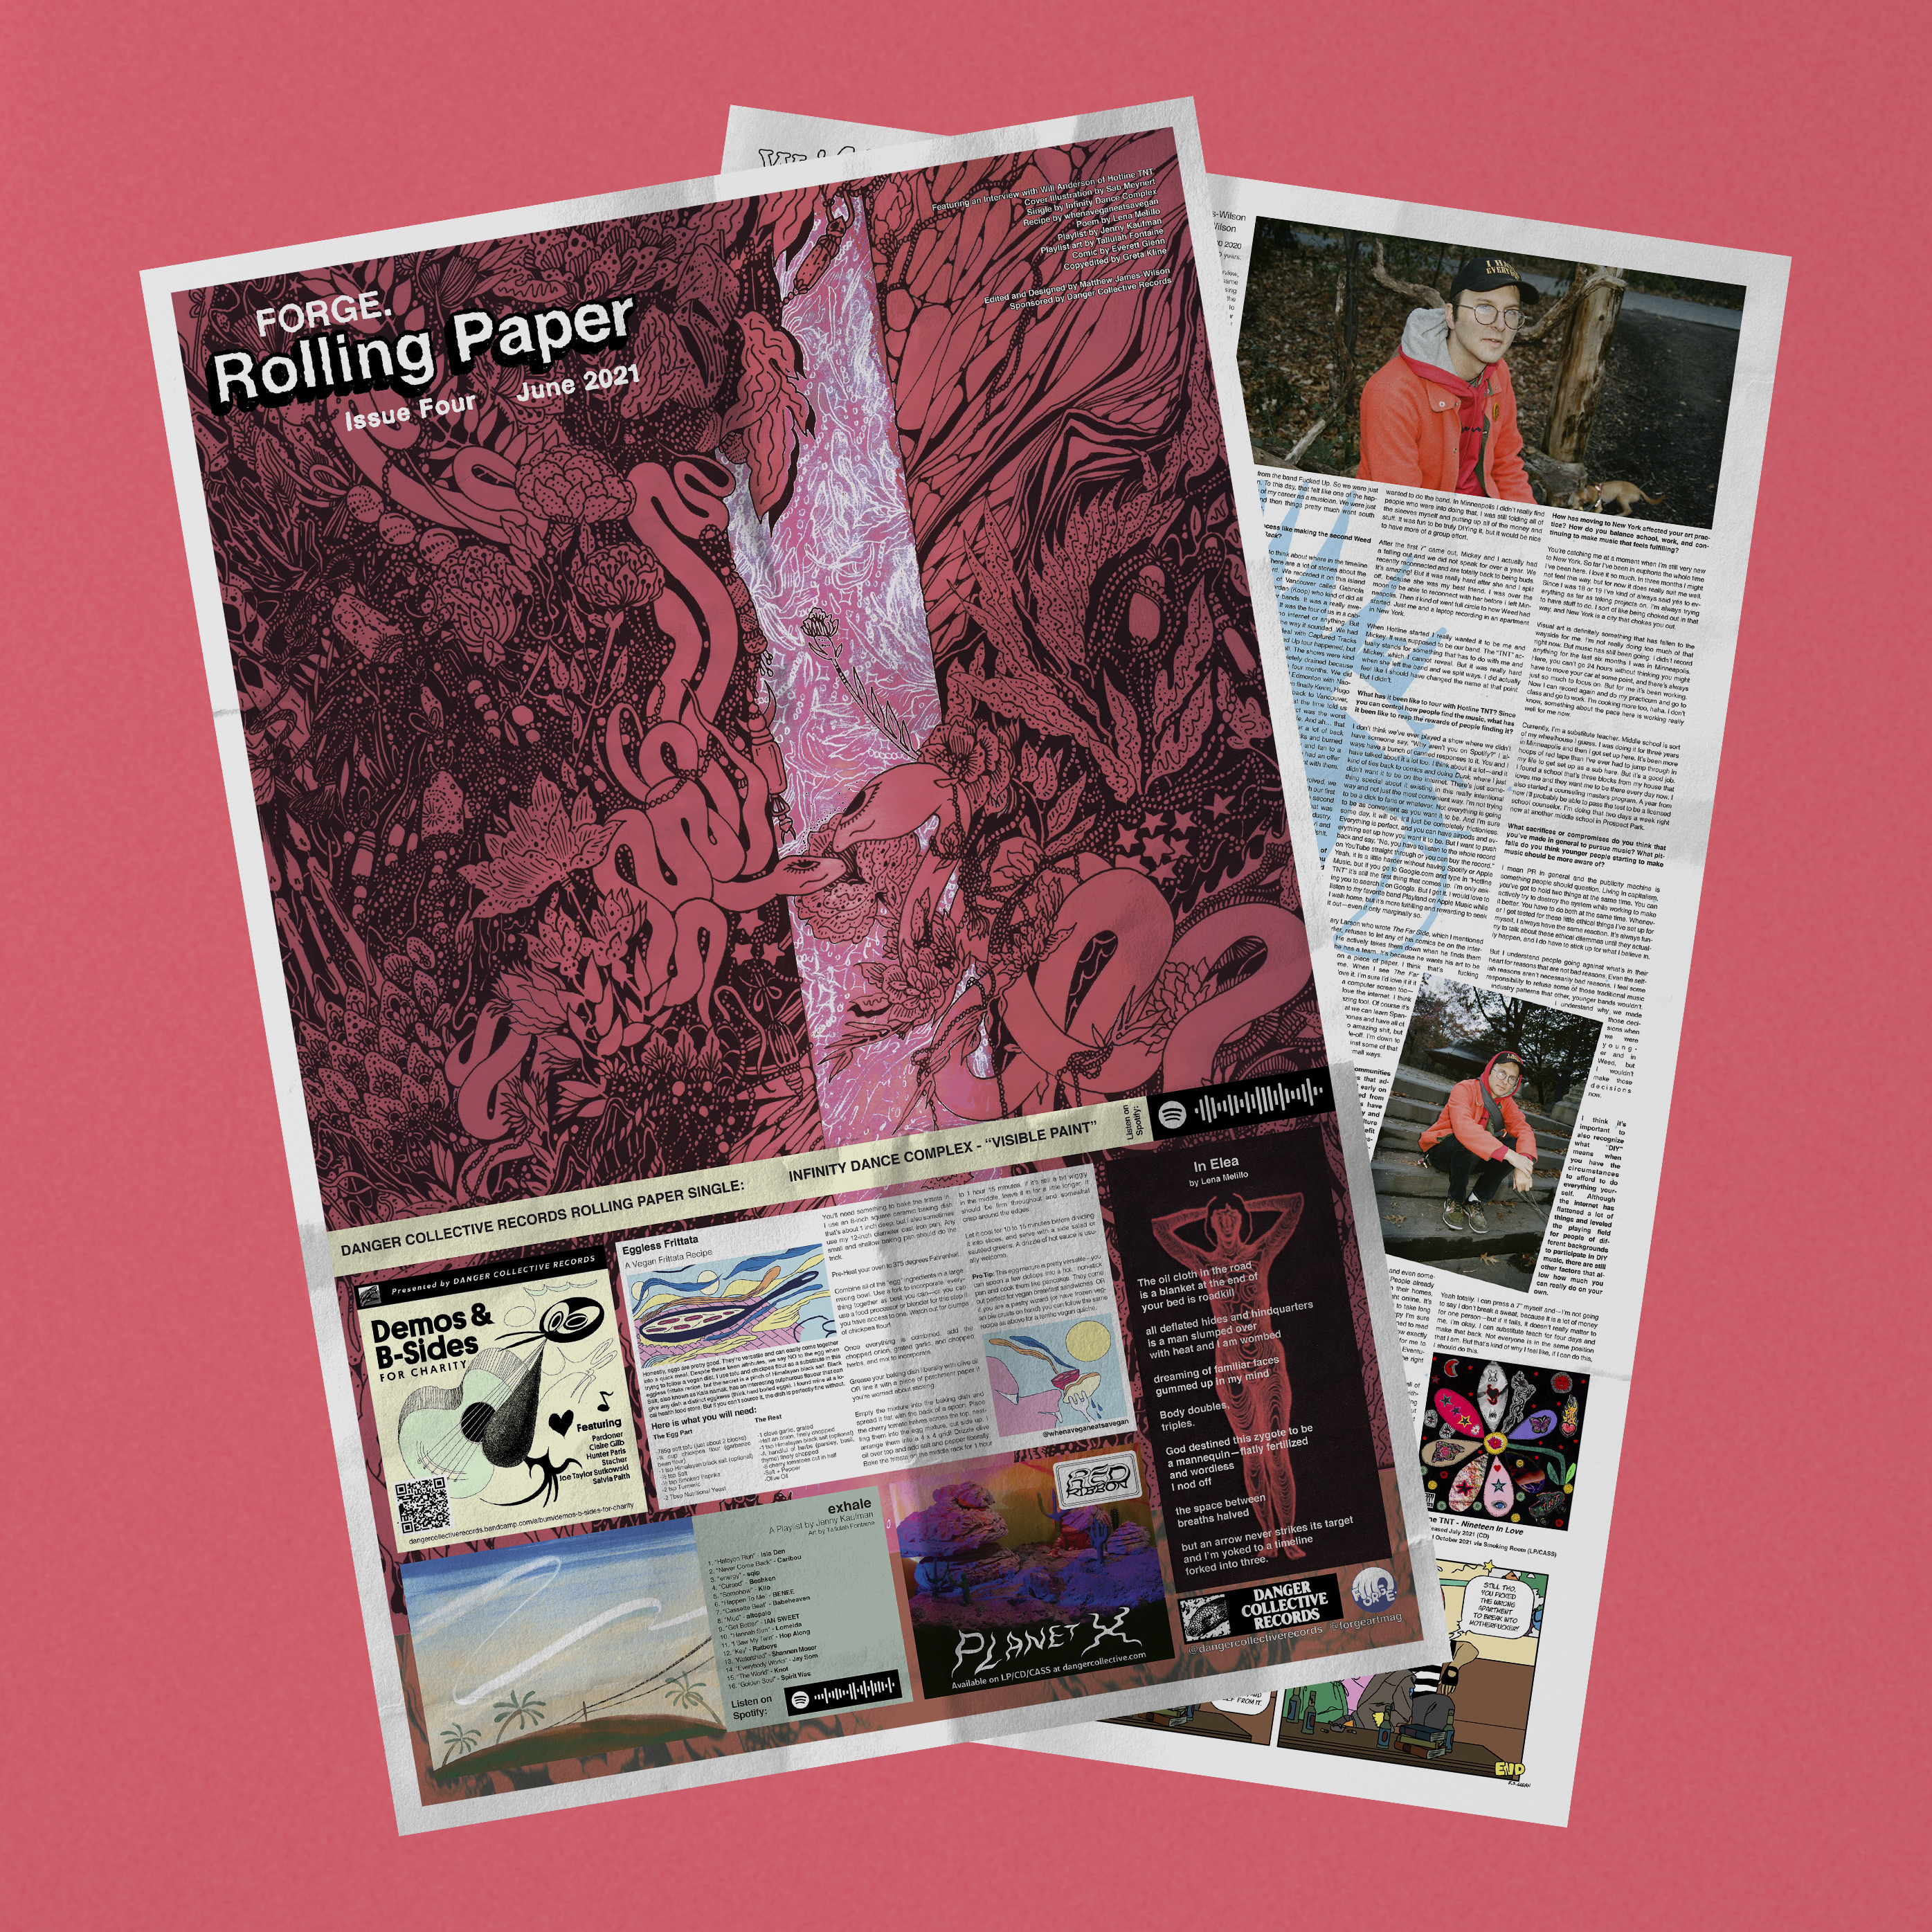 Copy of FORGE Rolling Paper Issue Four (Two Copies)